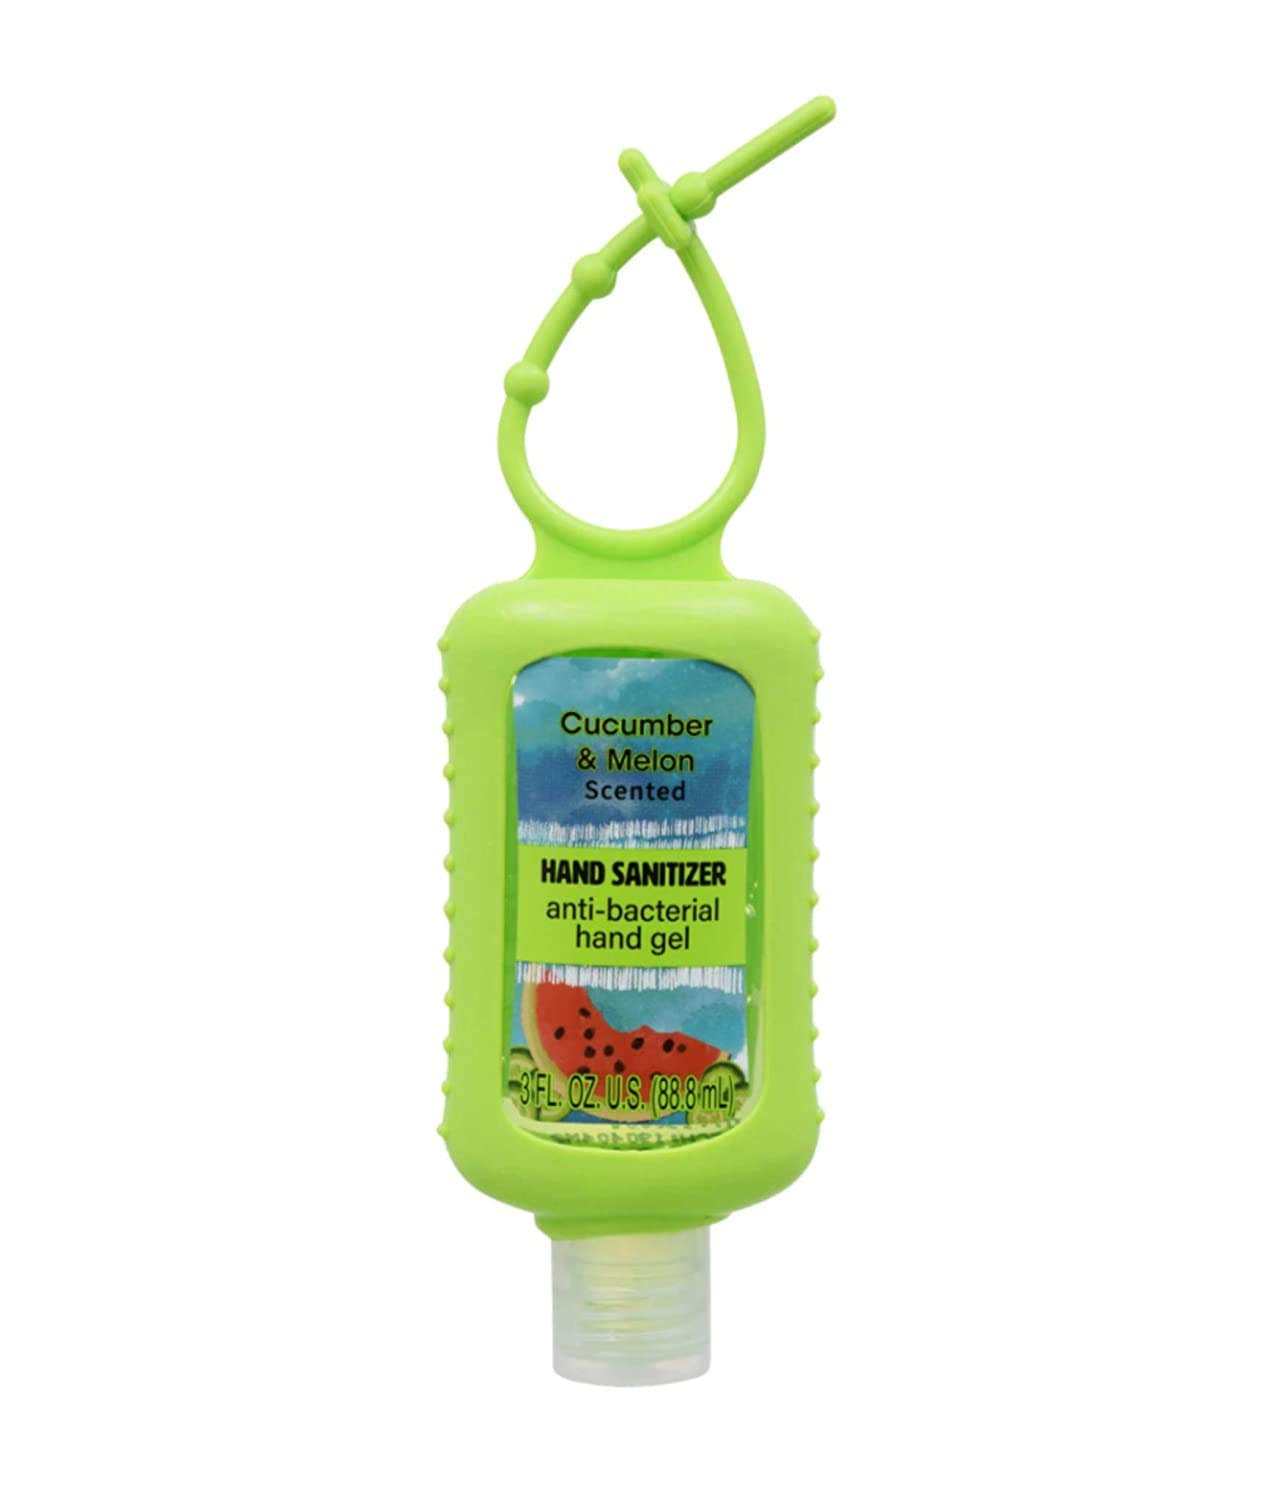 Cucumber and Melon Scented Hand Sanitizer - Travel Size Anti-bacterial hand gel 3oz